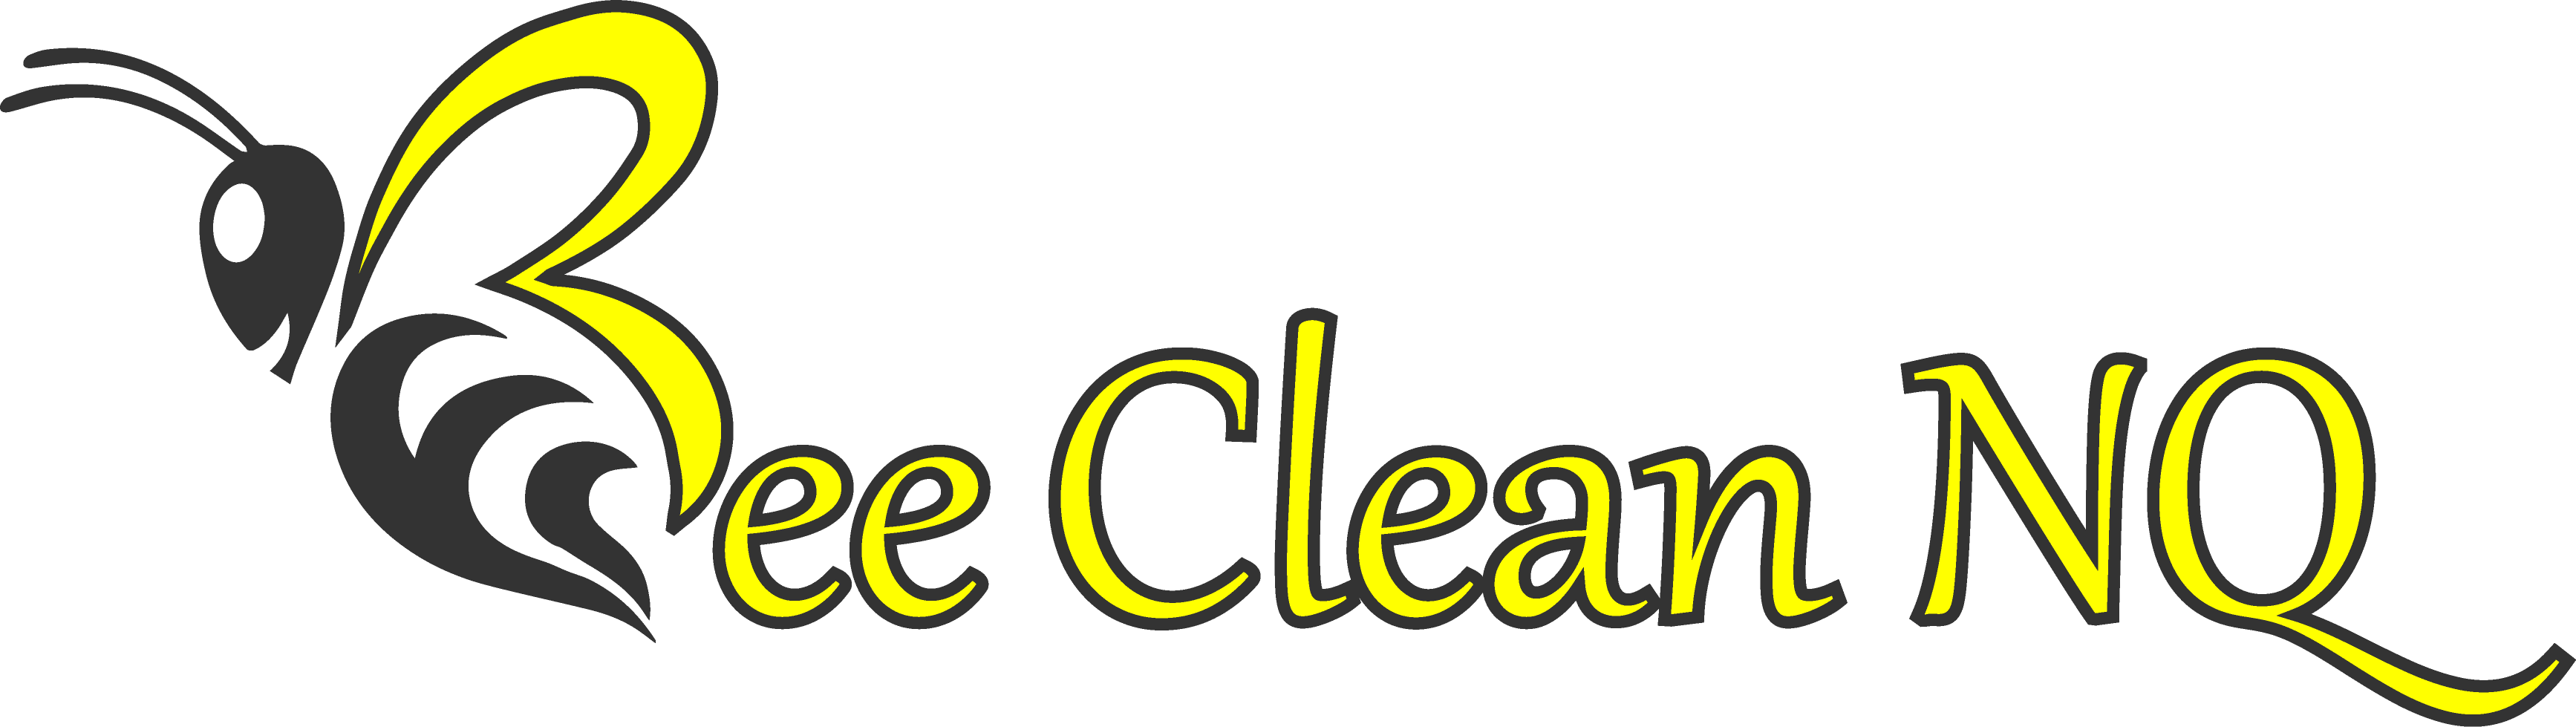 Bee Clean NQ – Carpet & Upholstery Cleaning